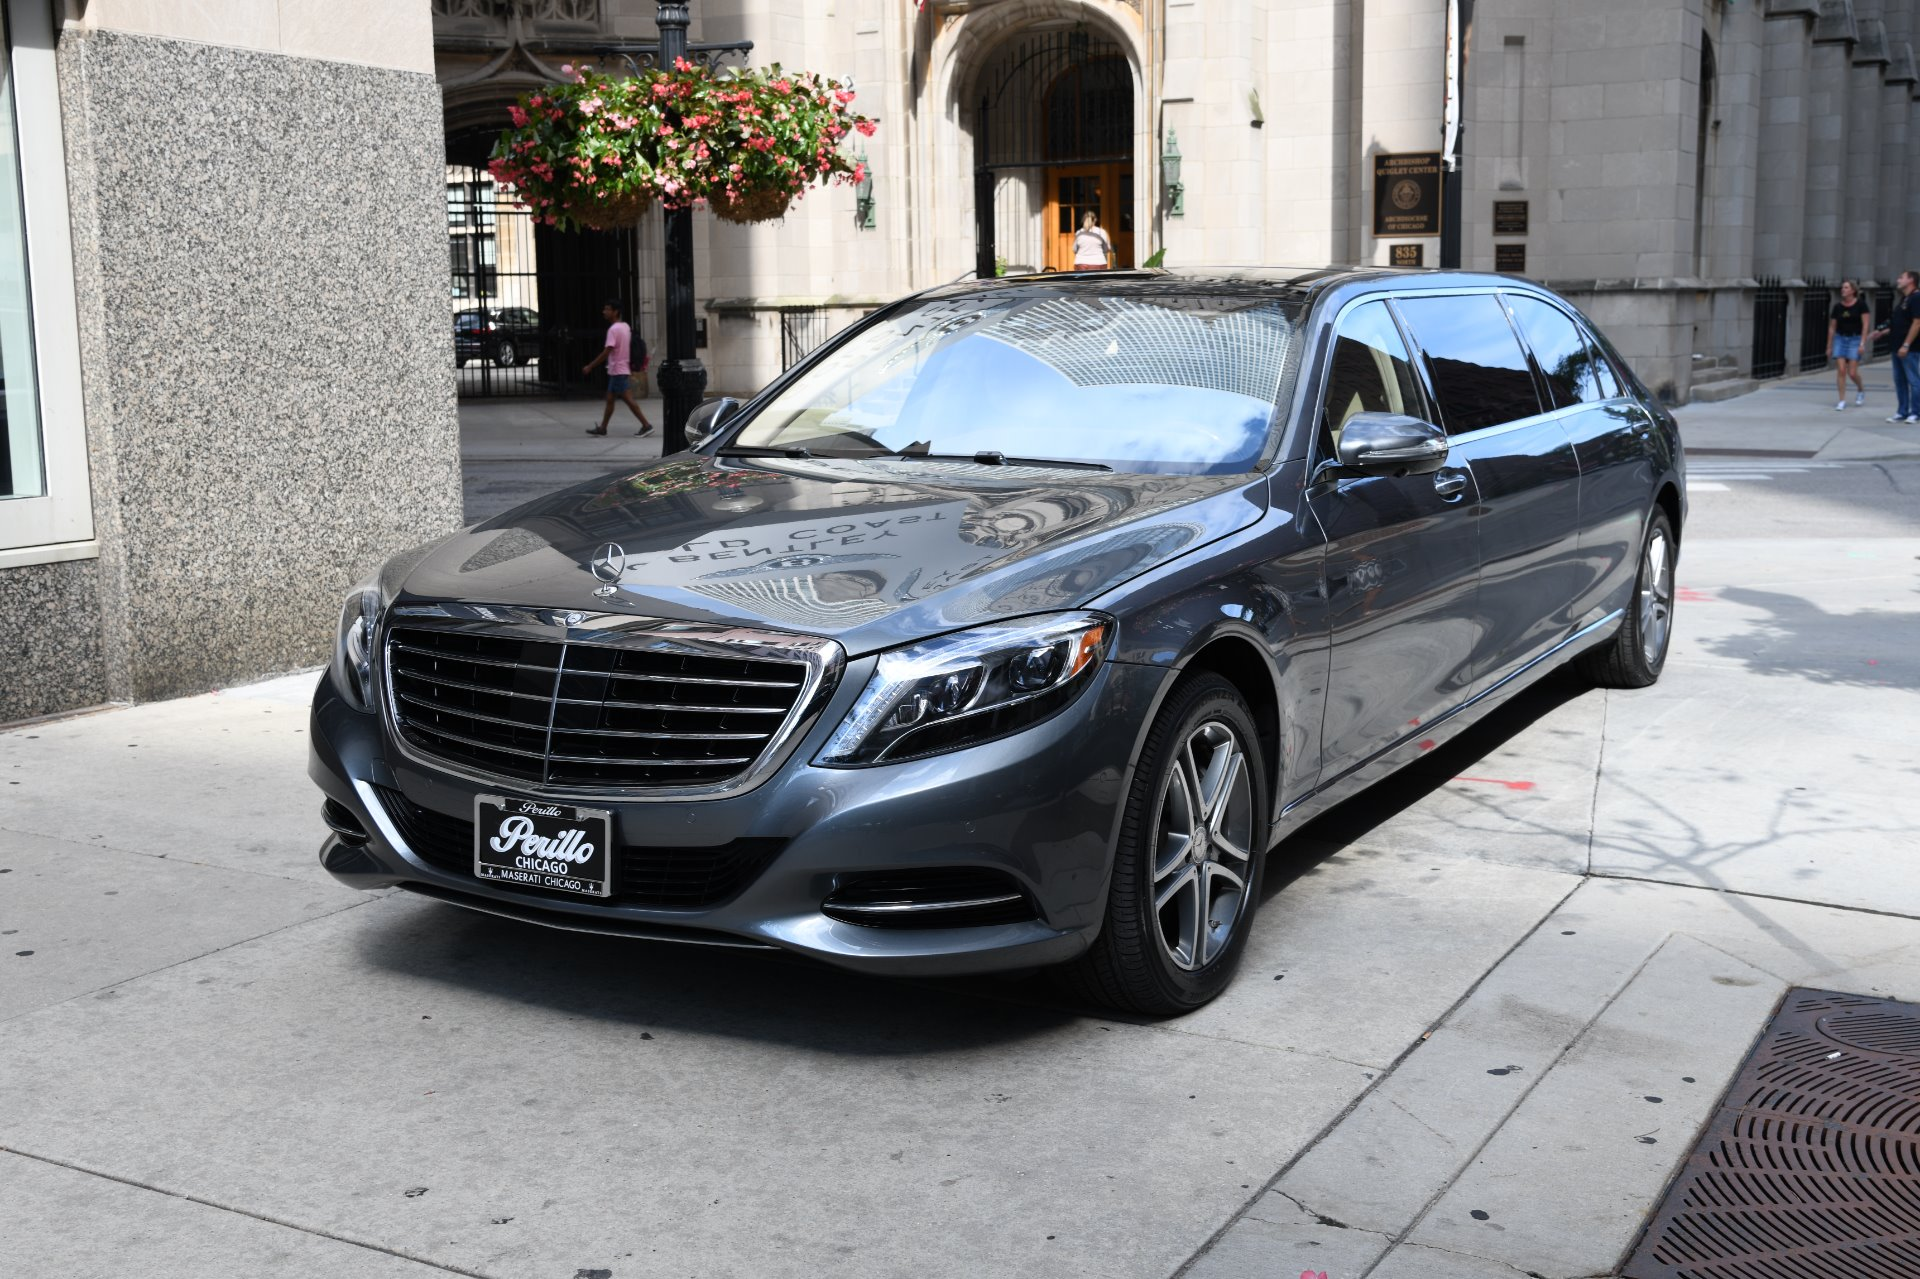 Used 2016 Mercedes-Benz LIMOUSINE S 550 4MATIC | Chicago, IL